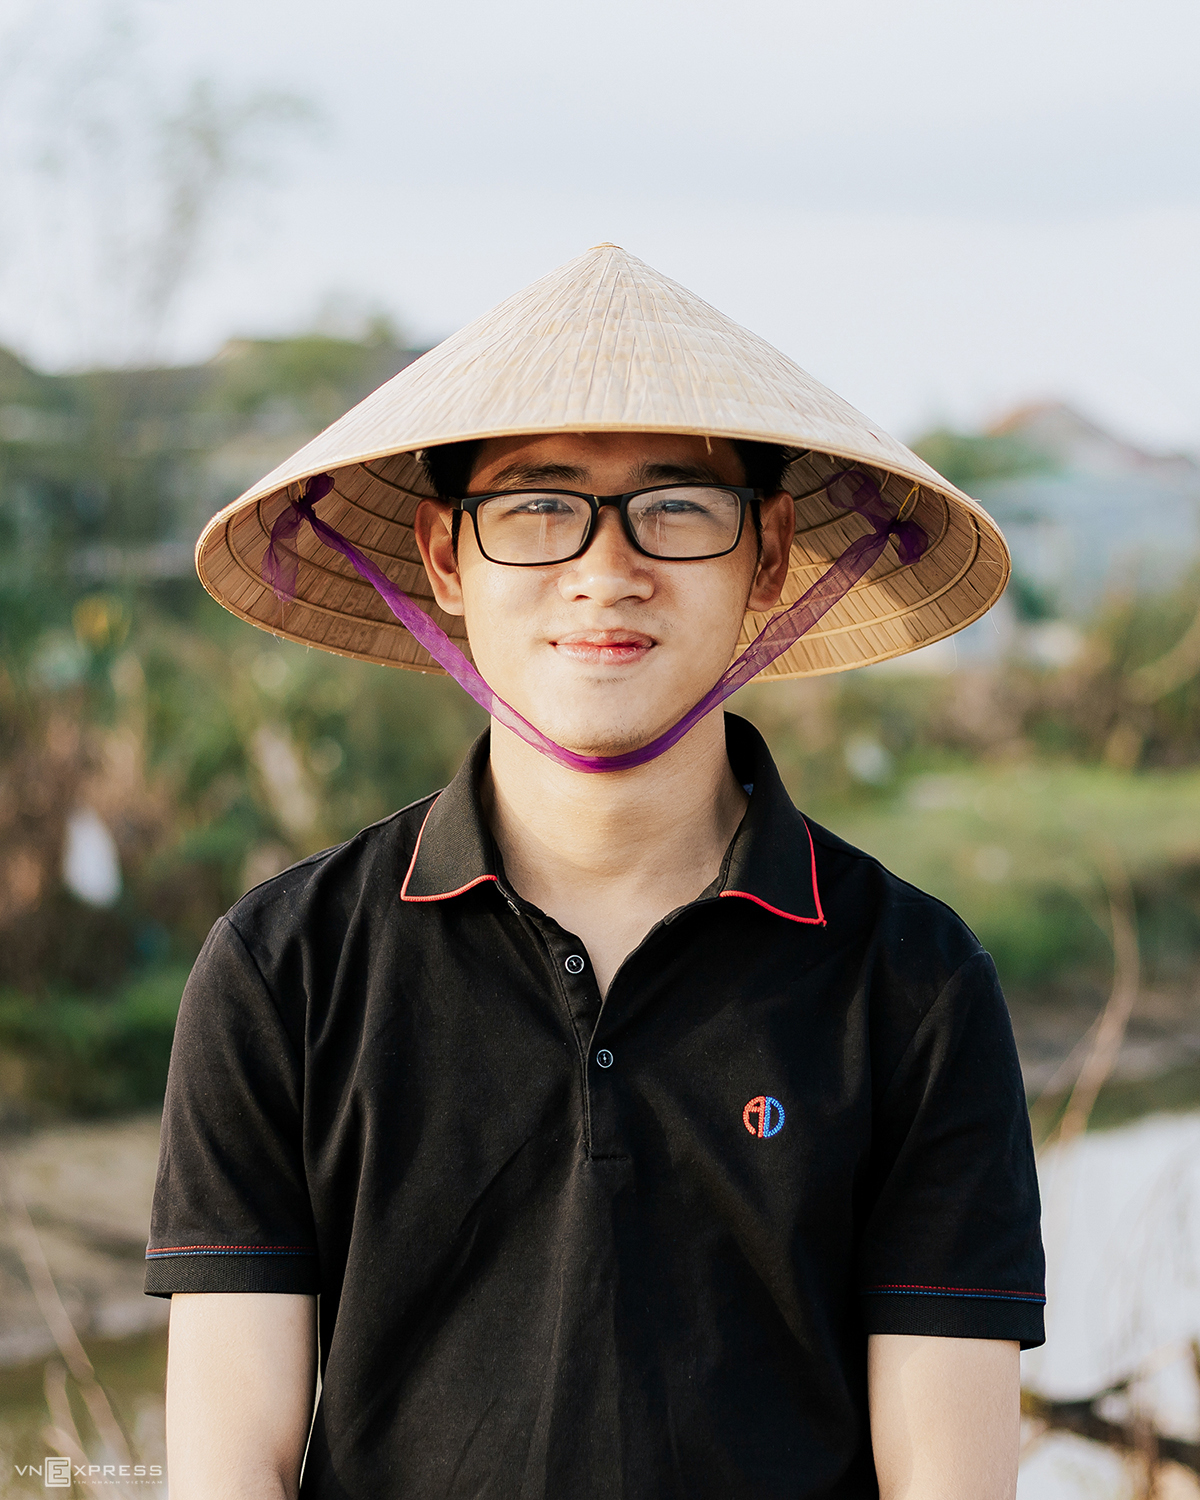 Le Van Anh Tai, Young photographer